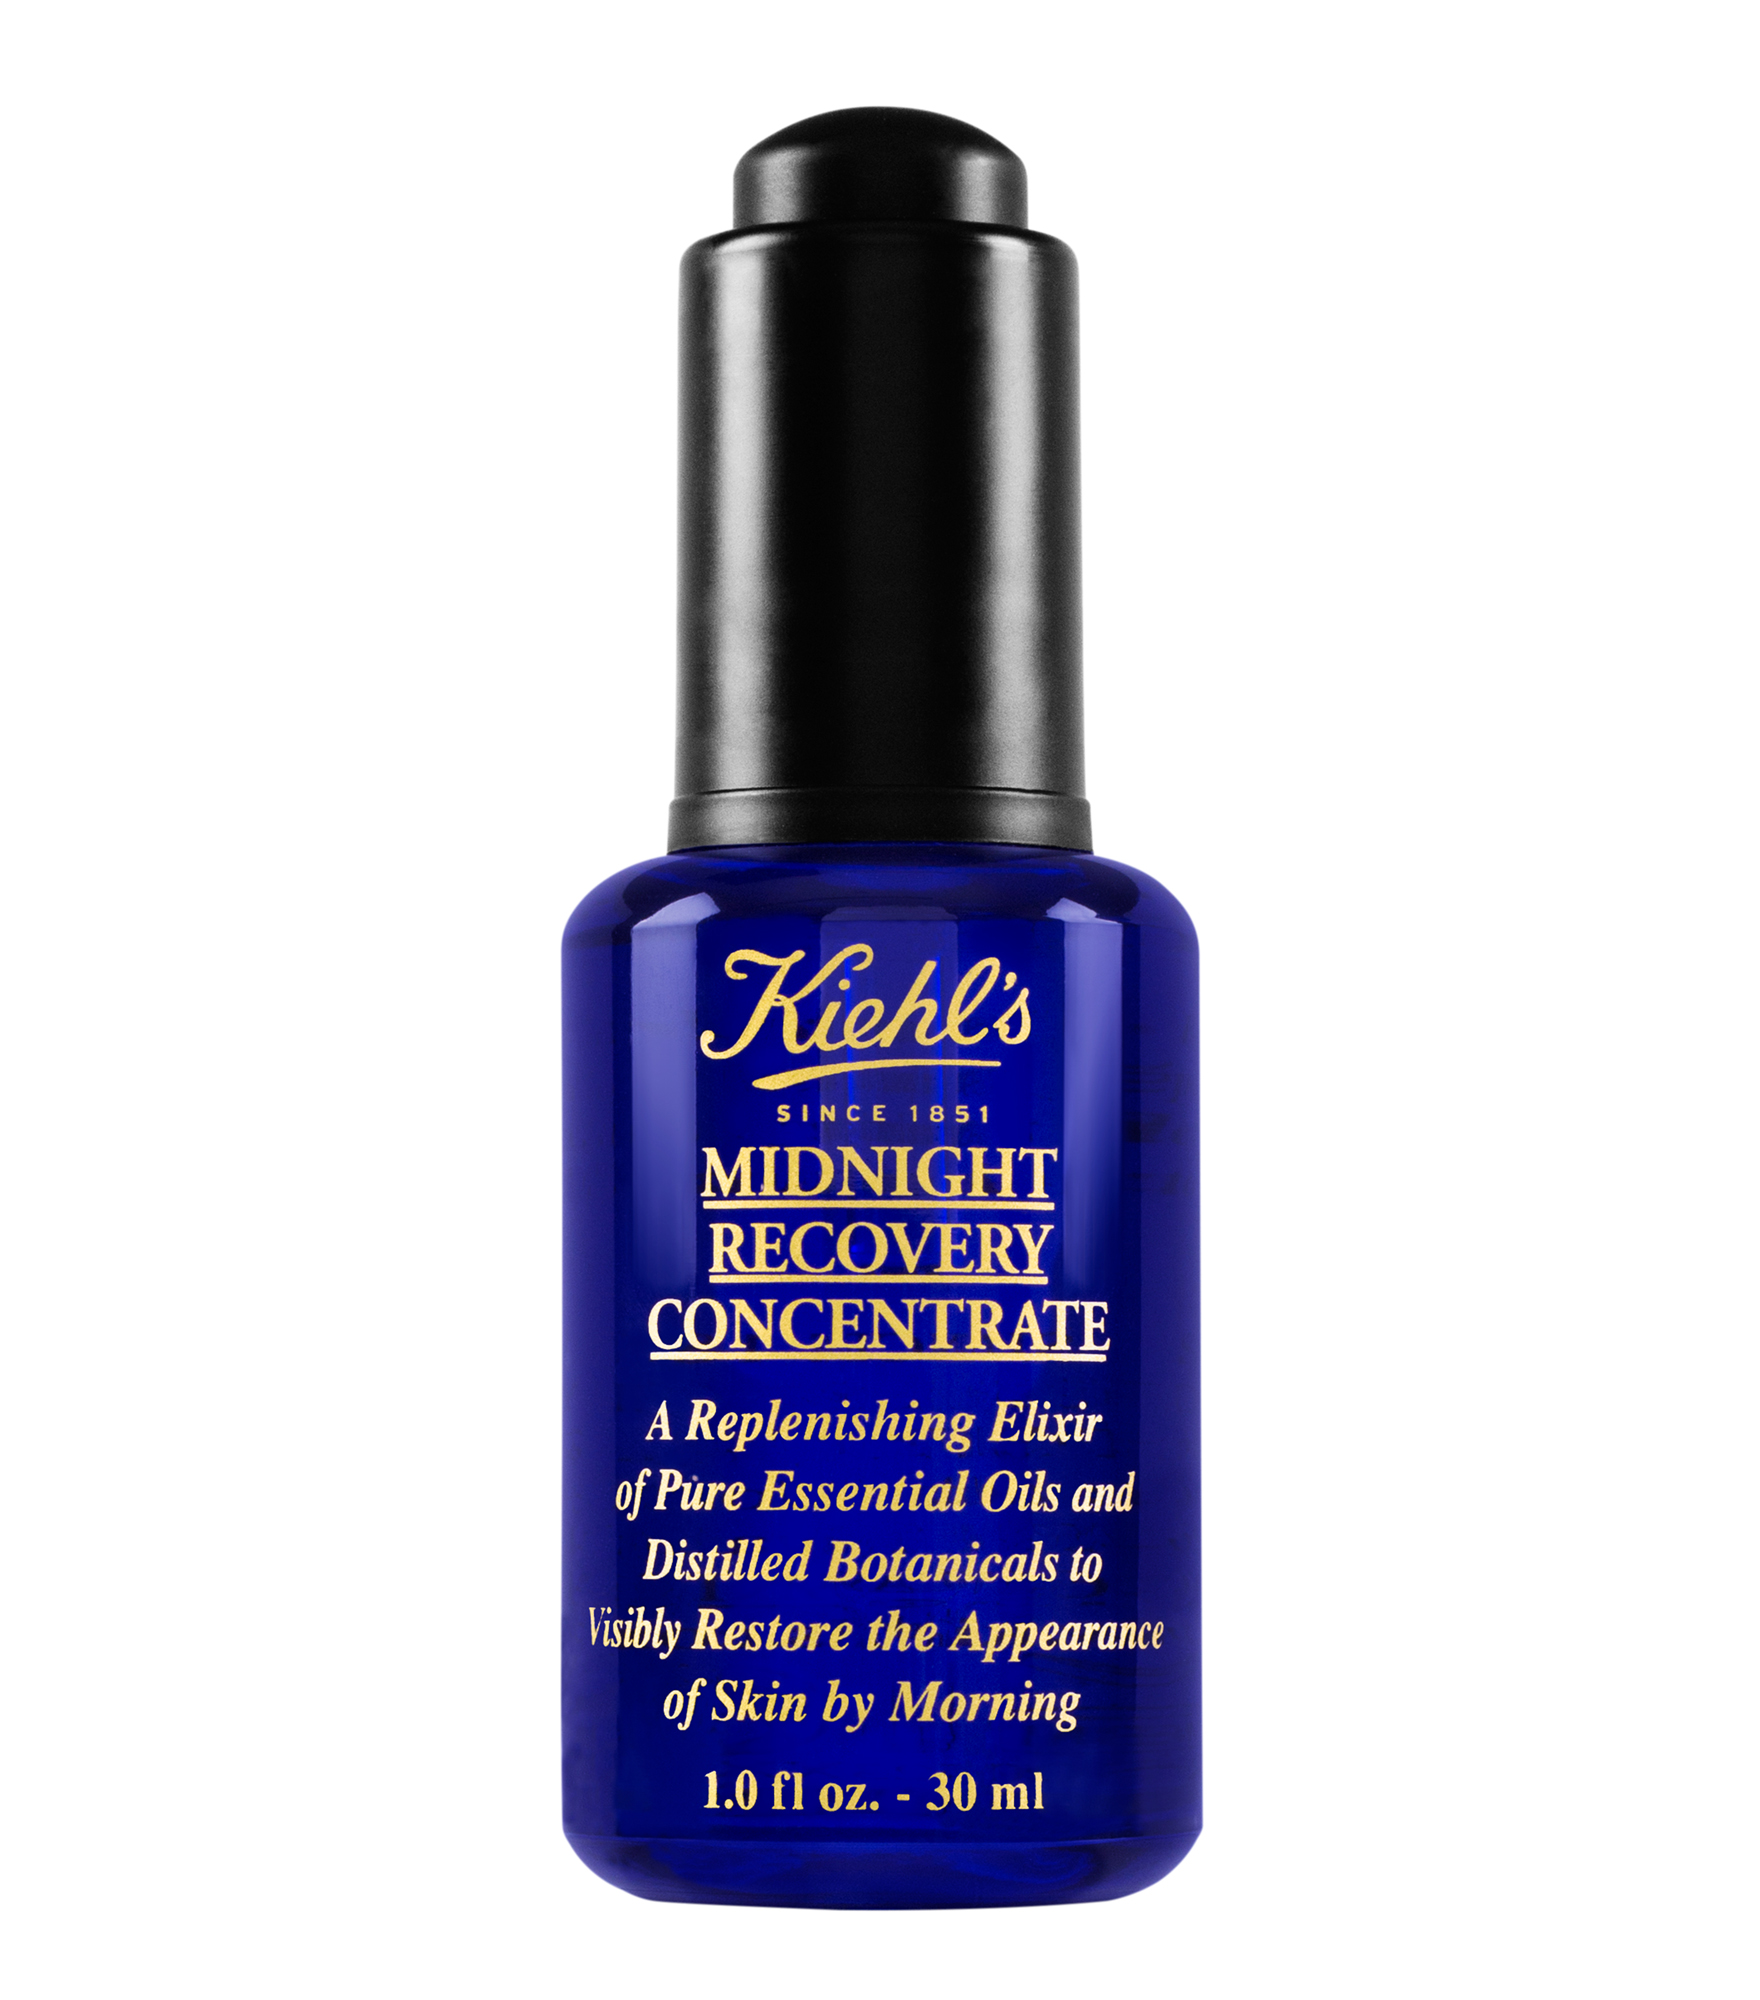 Midnight Recovery Concentrate 3605975053920 1.0fl.oz.